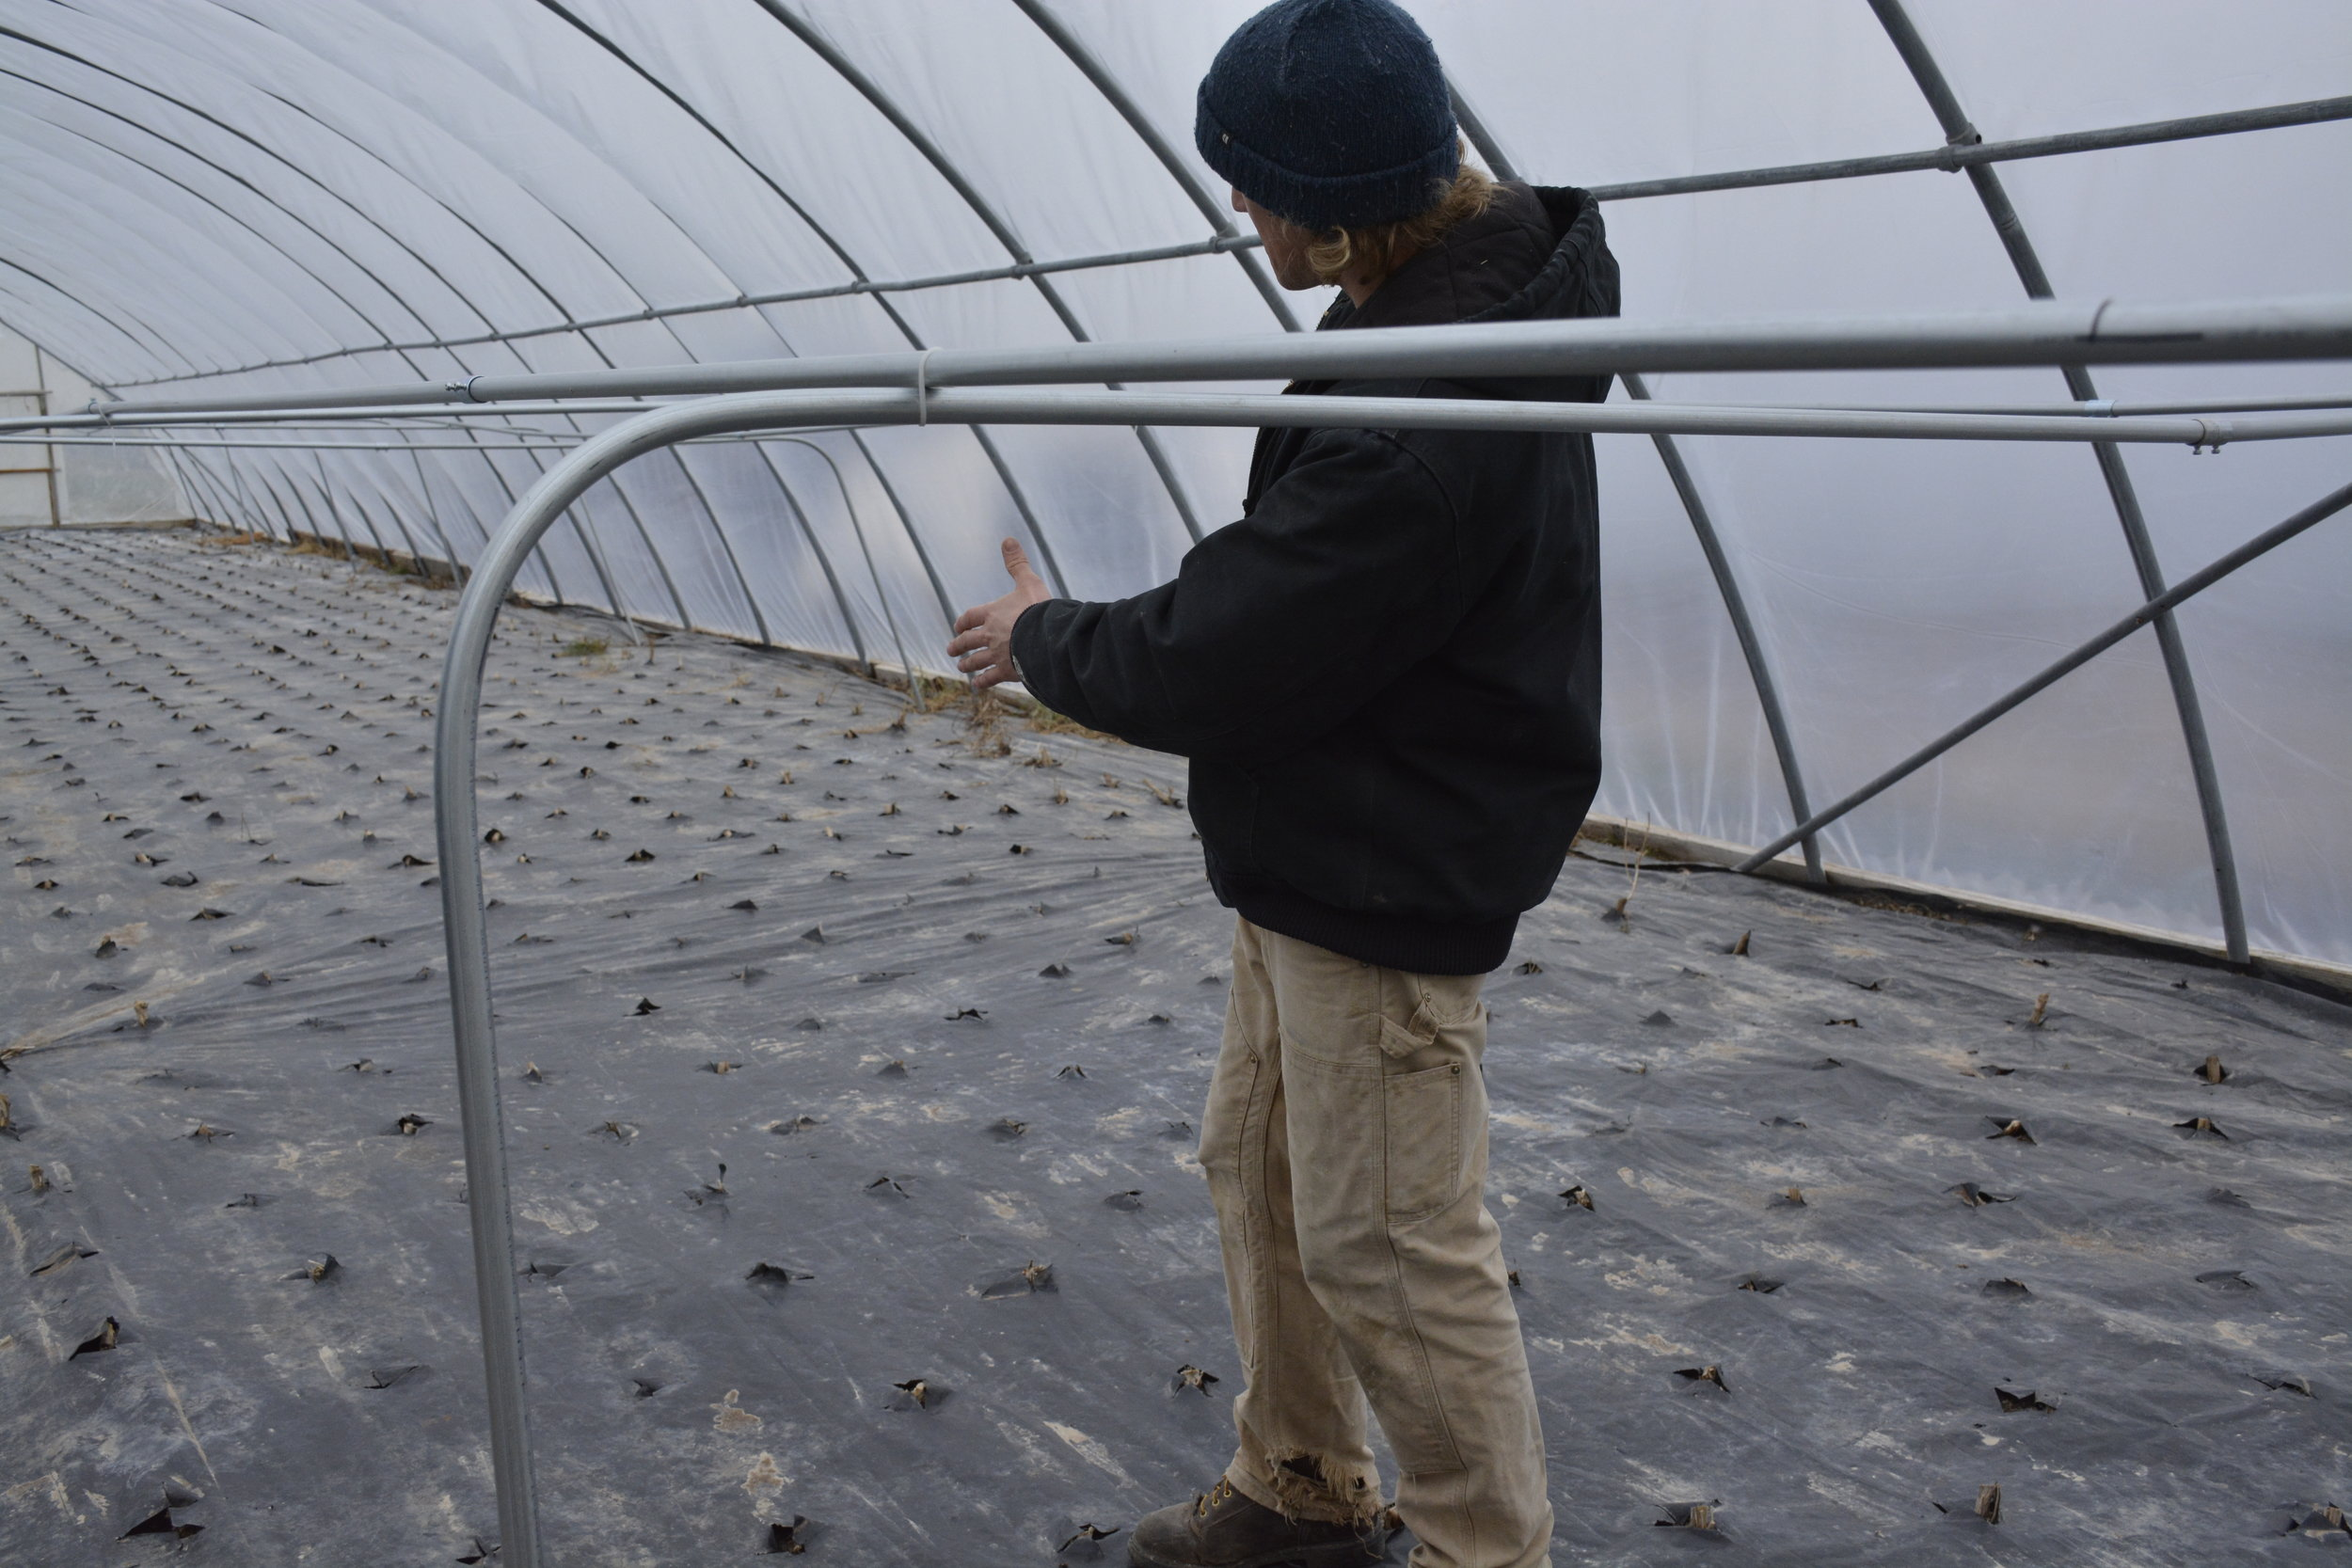 Mike watching the seedlings pop through the insulating cover